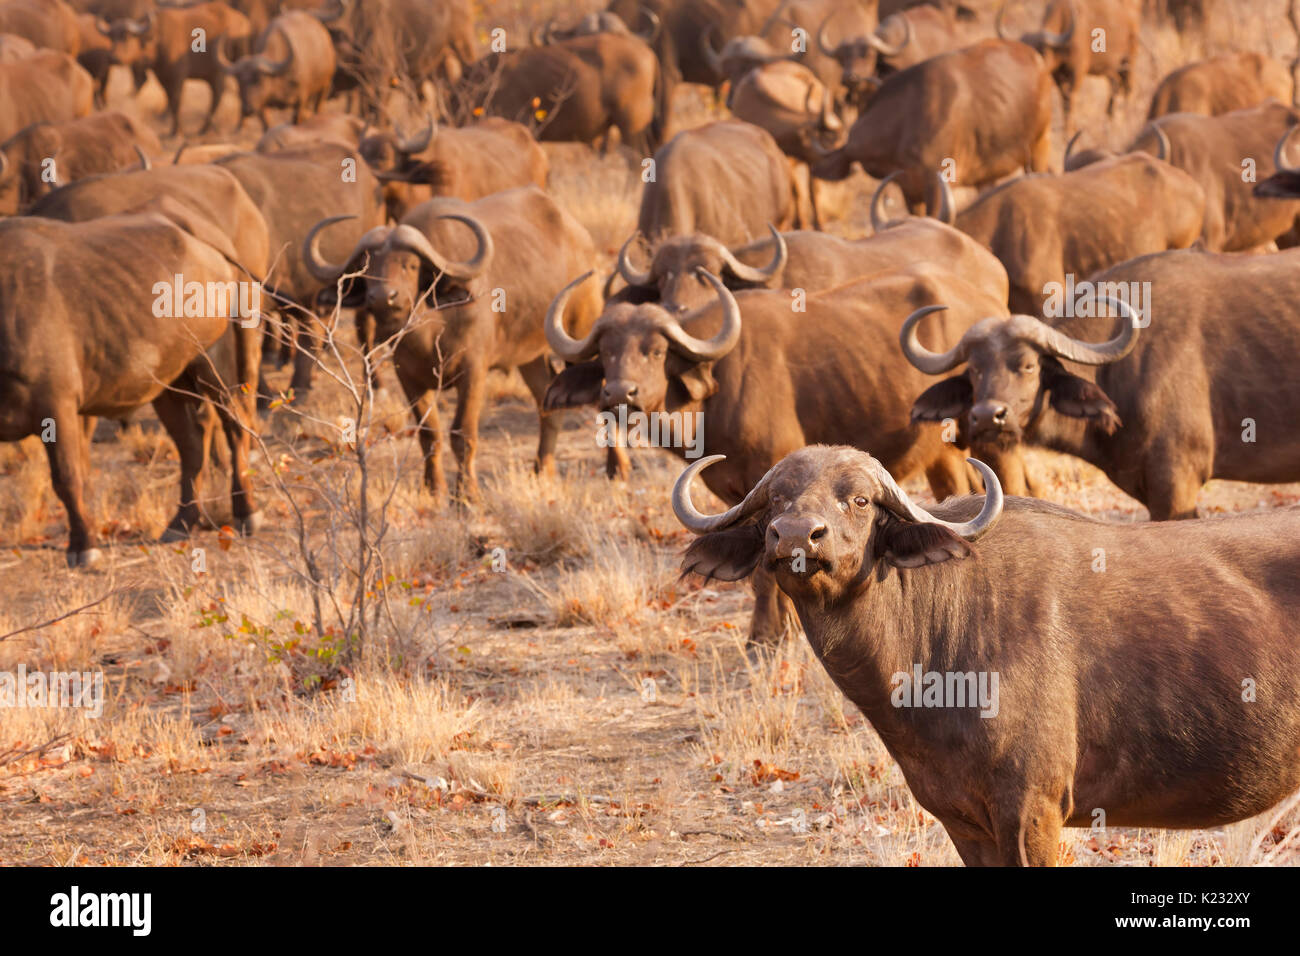 A herd of buffaloes in Kruger National Park in South Africa in early morning sunlight. - Stock Image